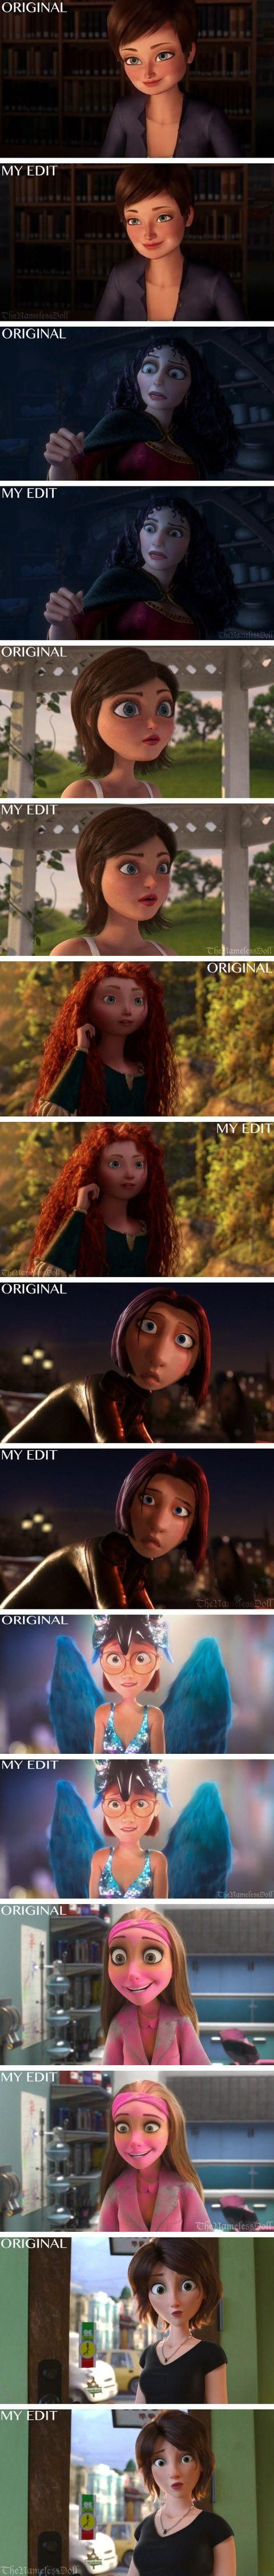 Disney characters with more realistic faces - the thing is, i think they look equally good with a more normalized face